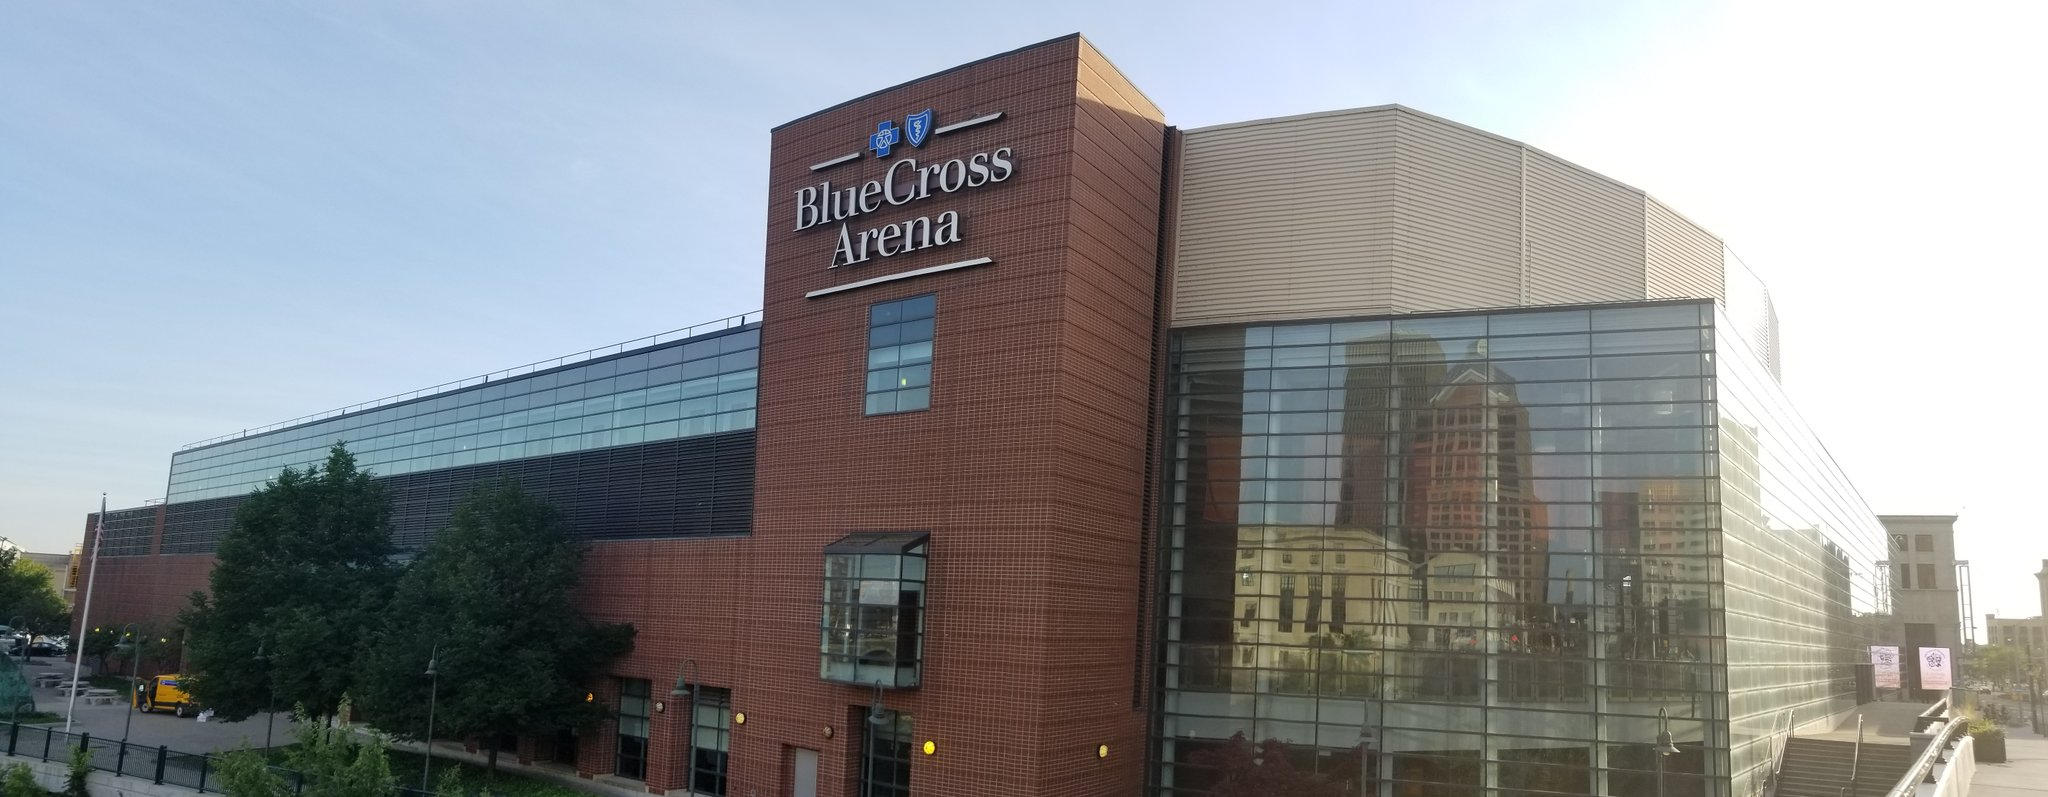 SMG Removed from Blue Cross Arena Management